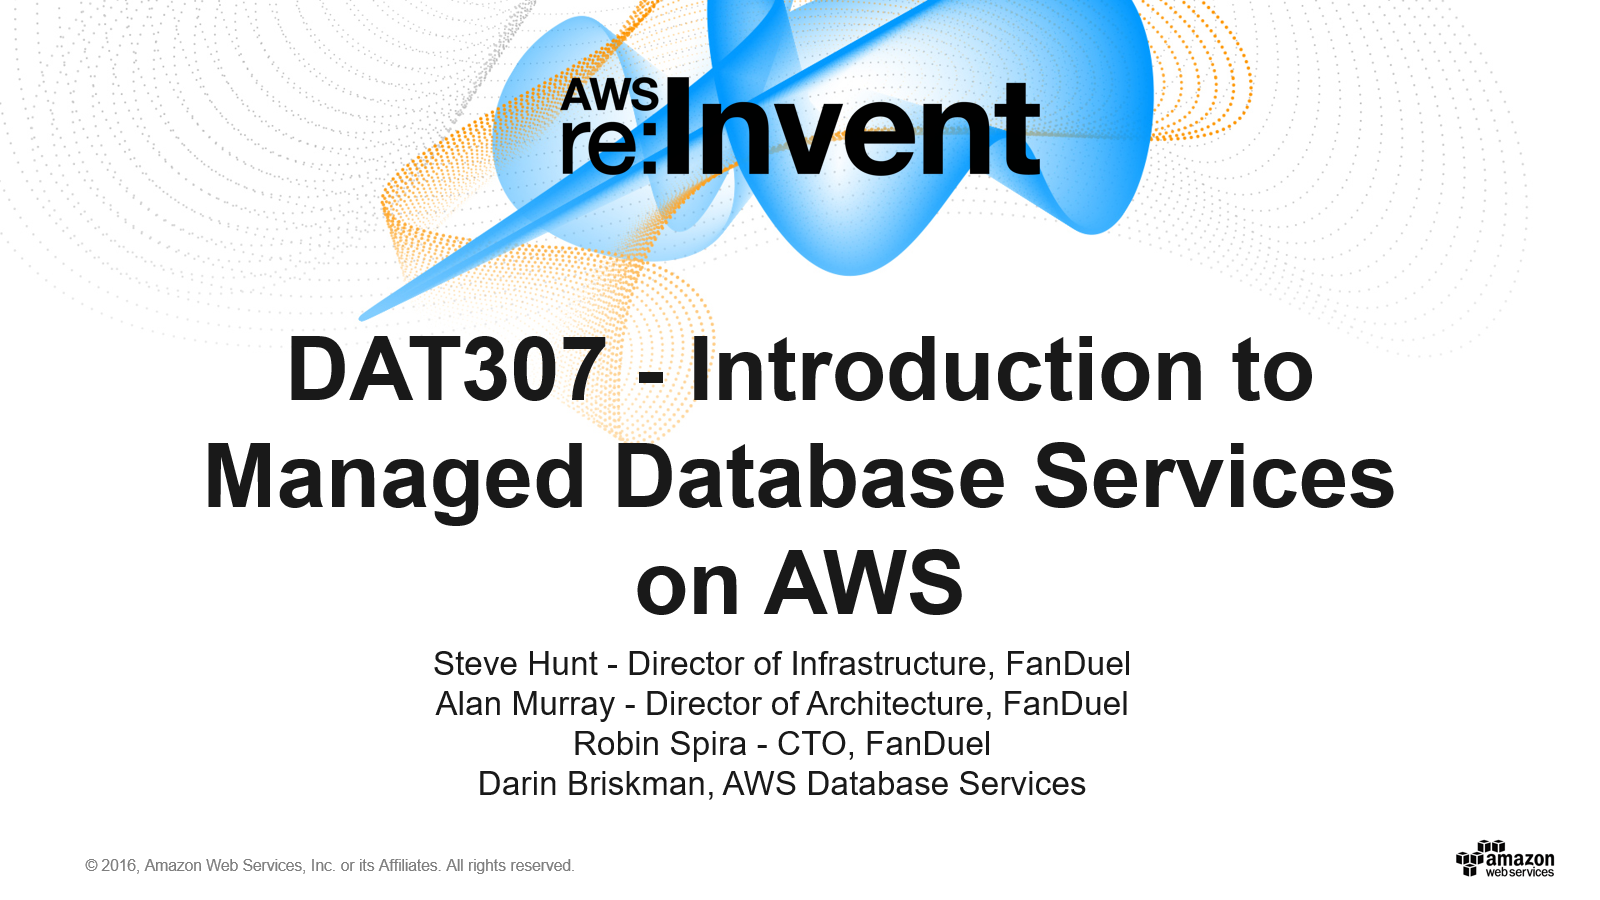 DAT307 Introduction to Managed Database Services on AWS